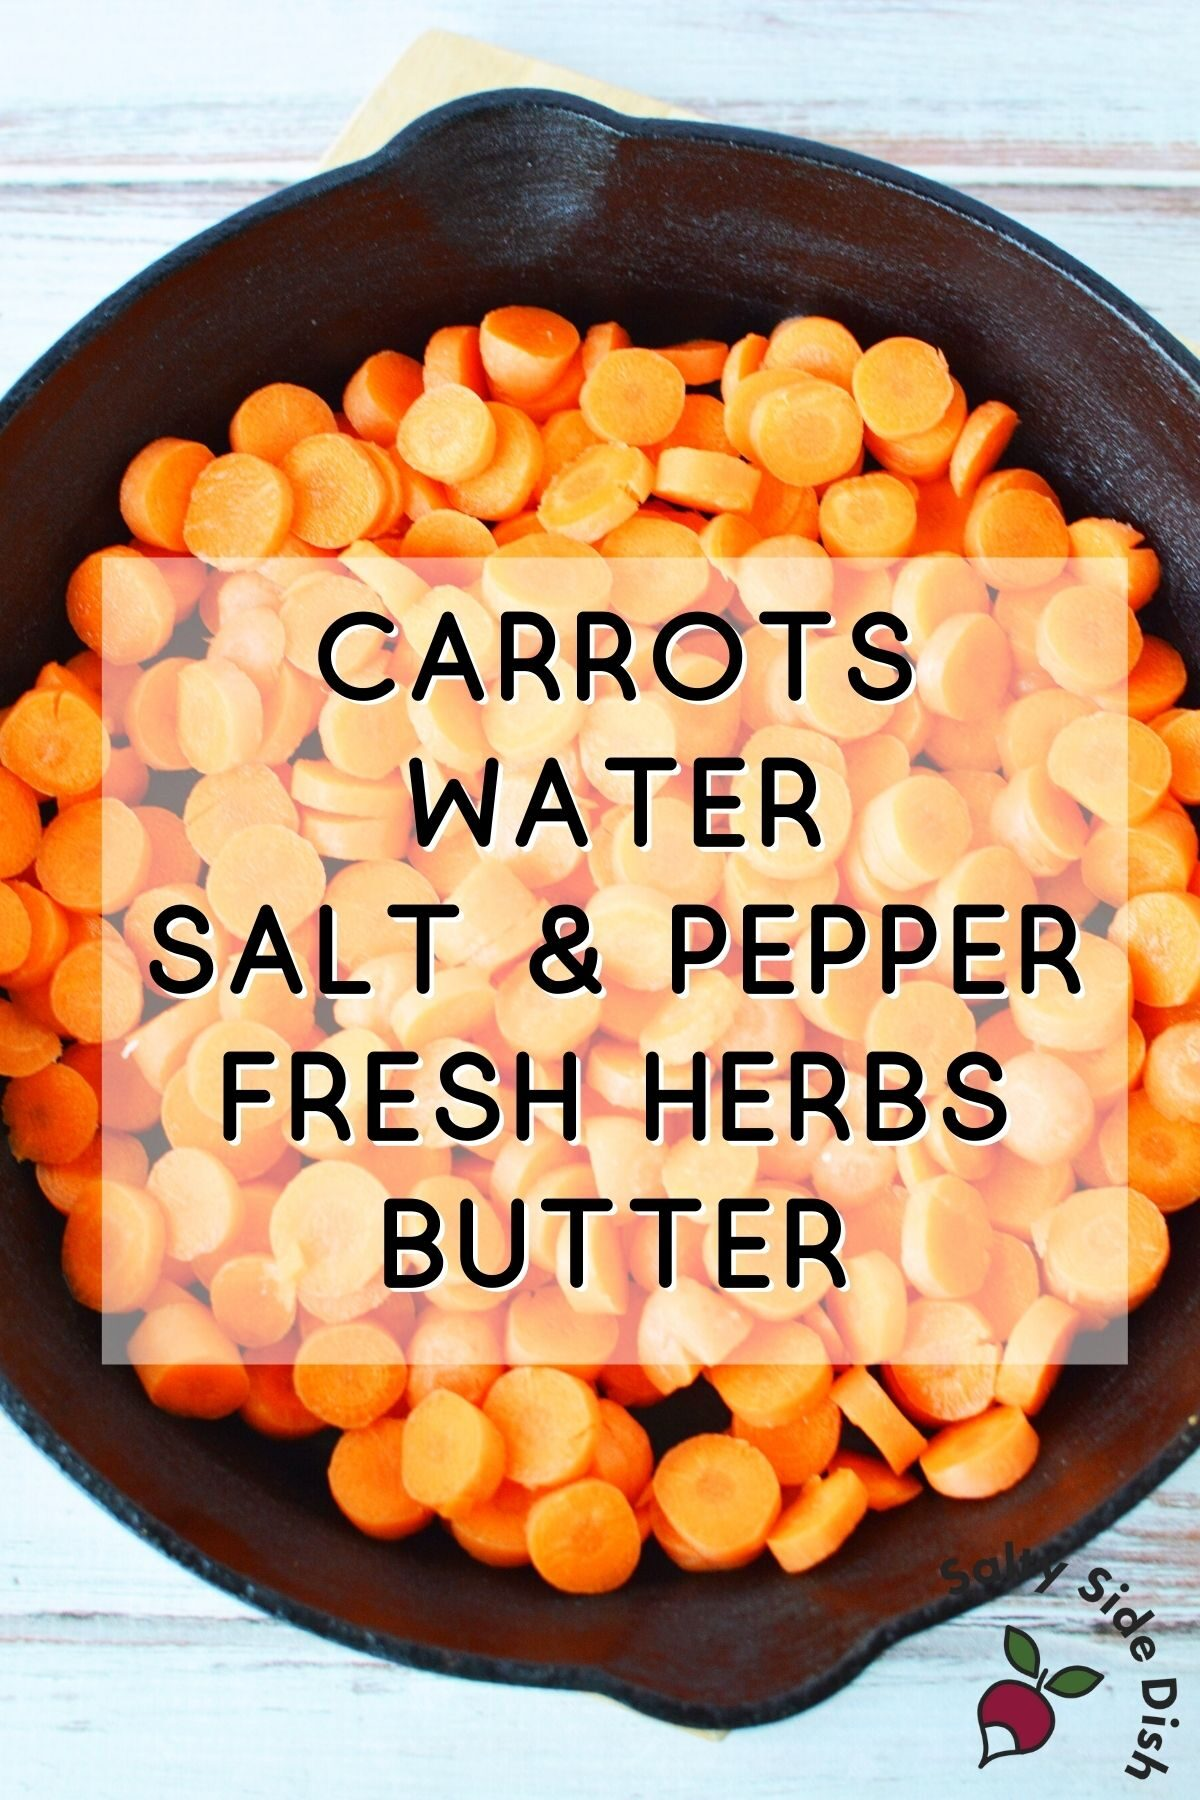 CARROTS IN PAN WITH LIST OF INGREDIENTS IN TEXT.